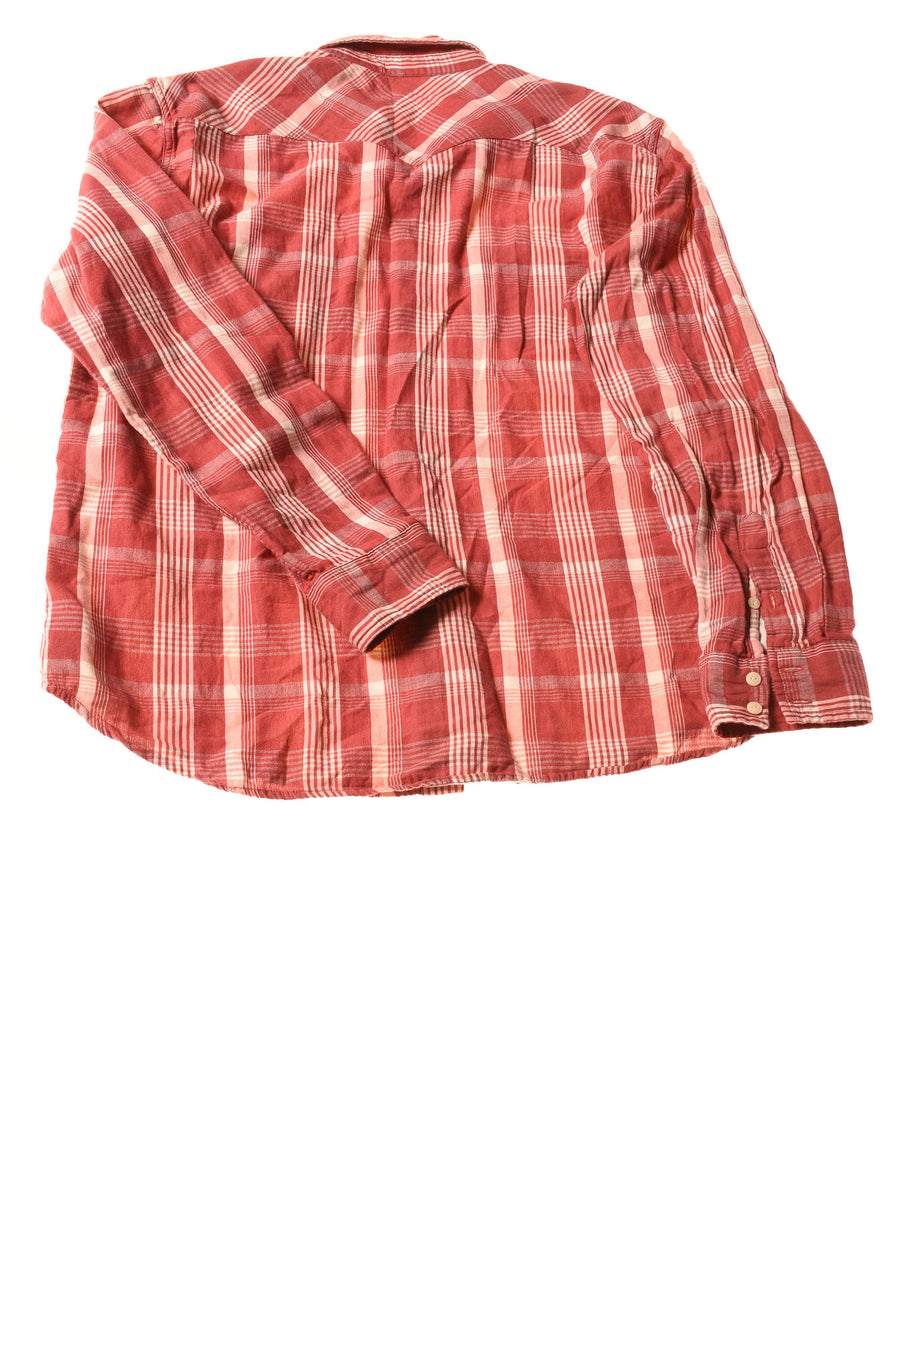 Men's Shirt By Lucky Brand